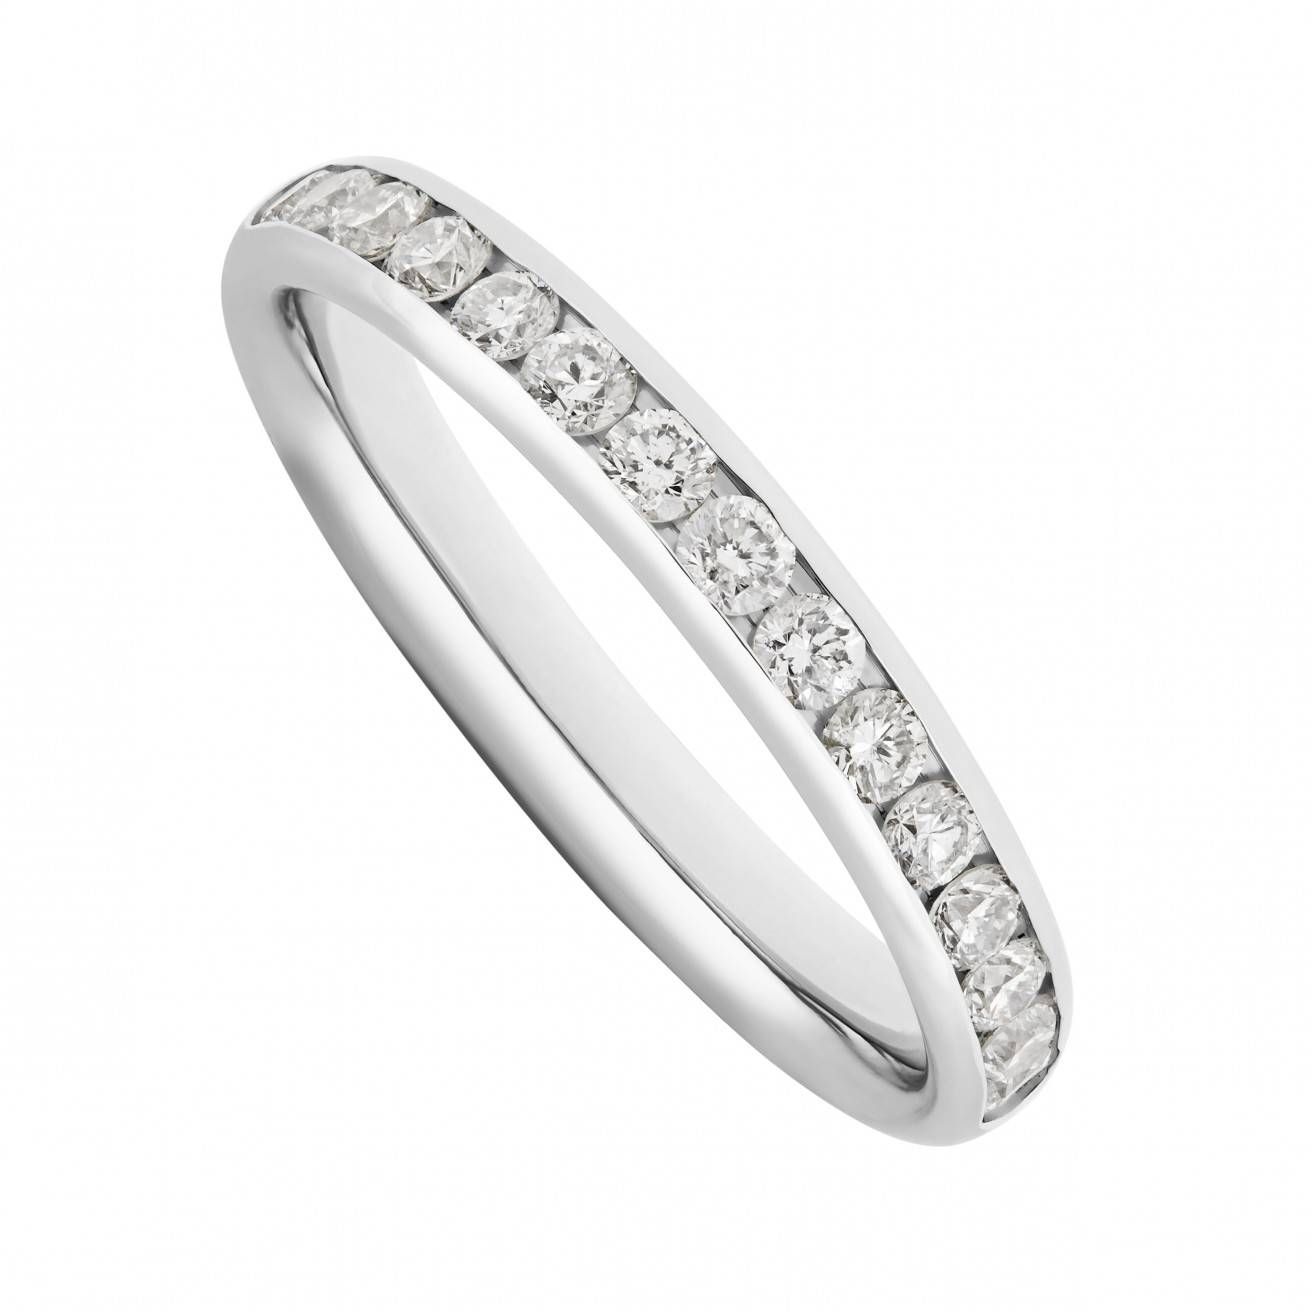 Wedding Rings : Platinum Diamond Rings Diamond Platinum Wedding Throughout Most Recently Released Platinum Diamond Wedding Bands (View 13 of 15)